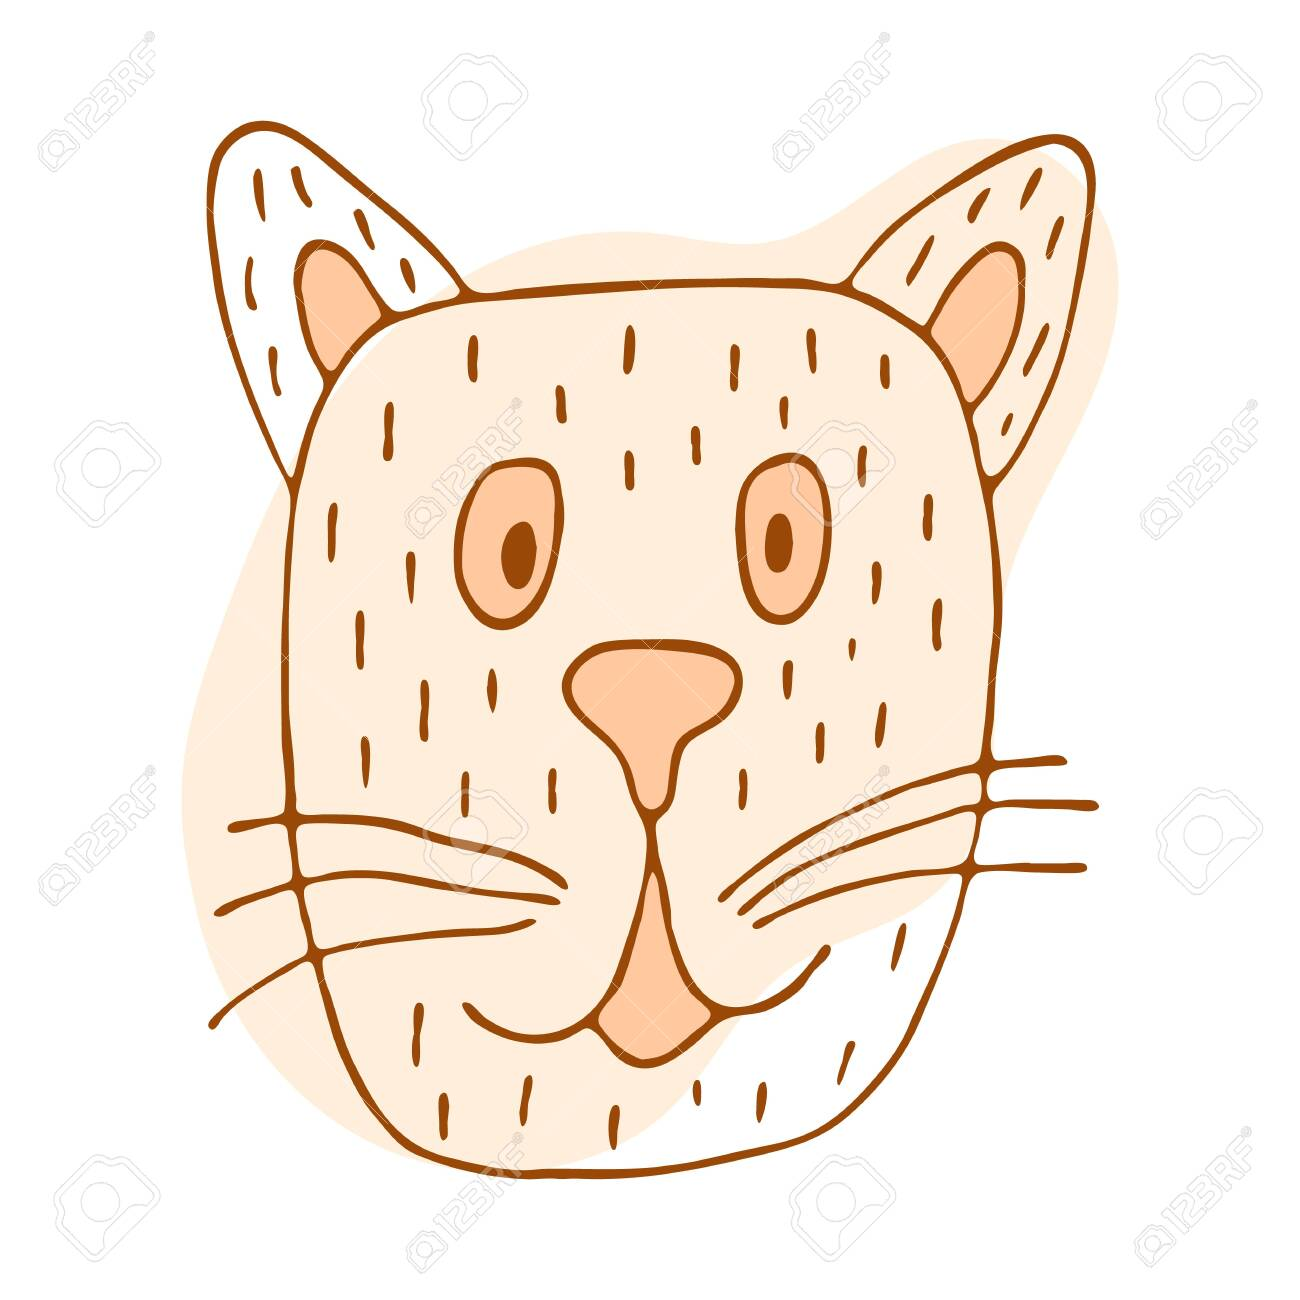 Vector Stock Kitten Illustration Orange Pink Cat In Doodle Style Royalty Free Cliparts Vectors And Stock Illustration Image 147388236